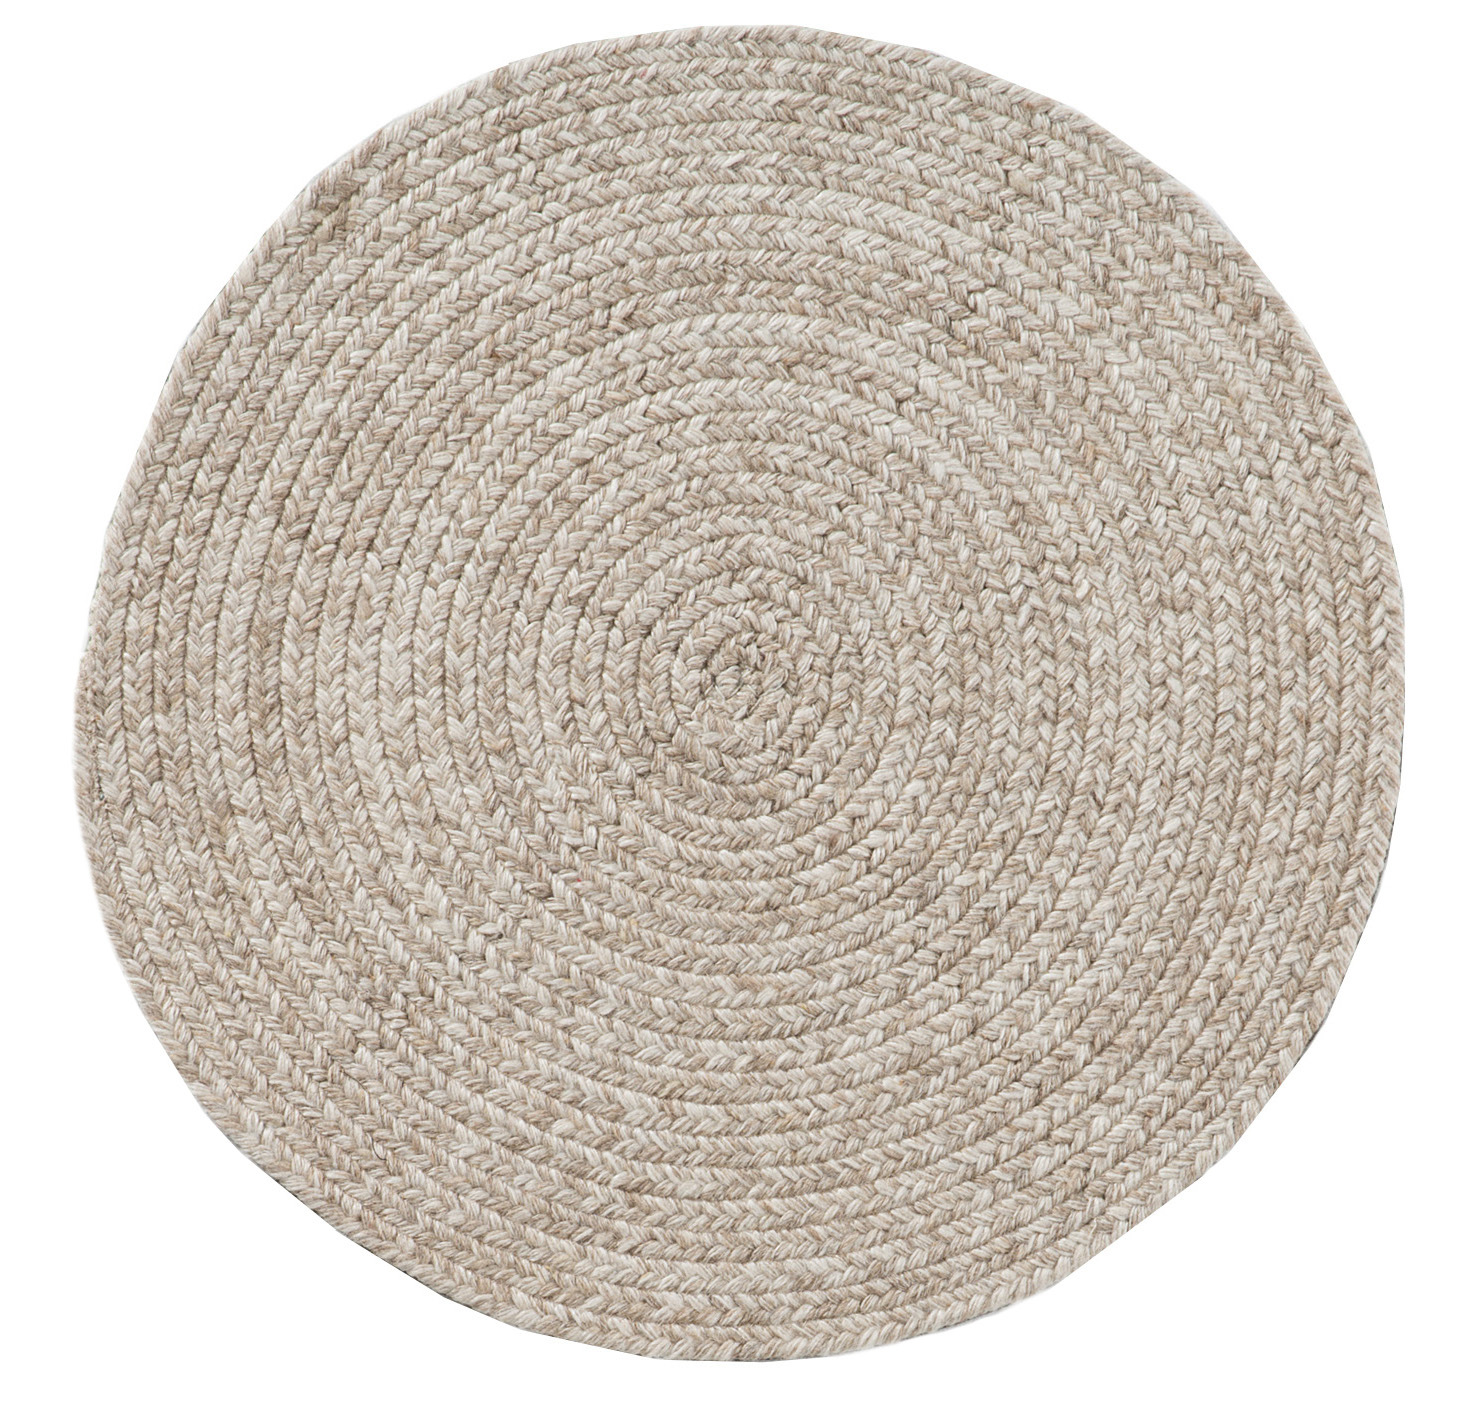 nordic-sea-shell-hand-woven-art-silk-and-wool-rugs-perth